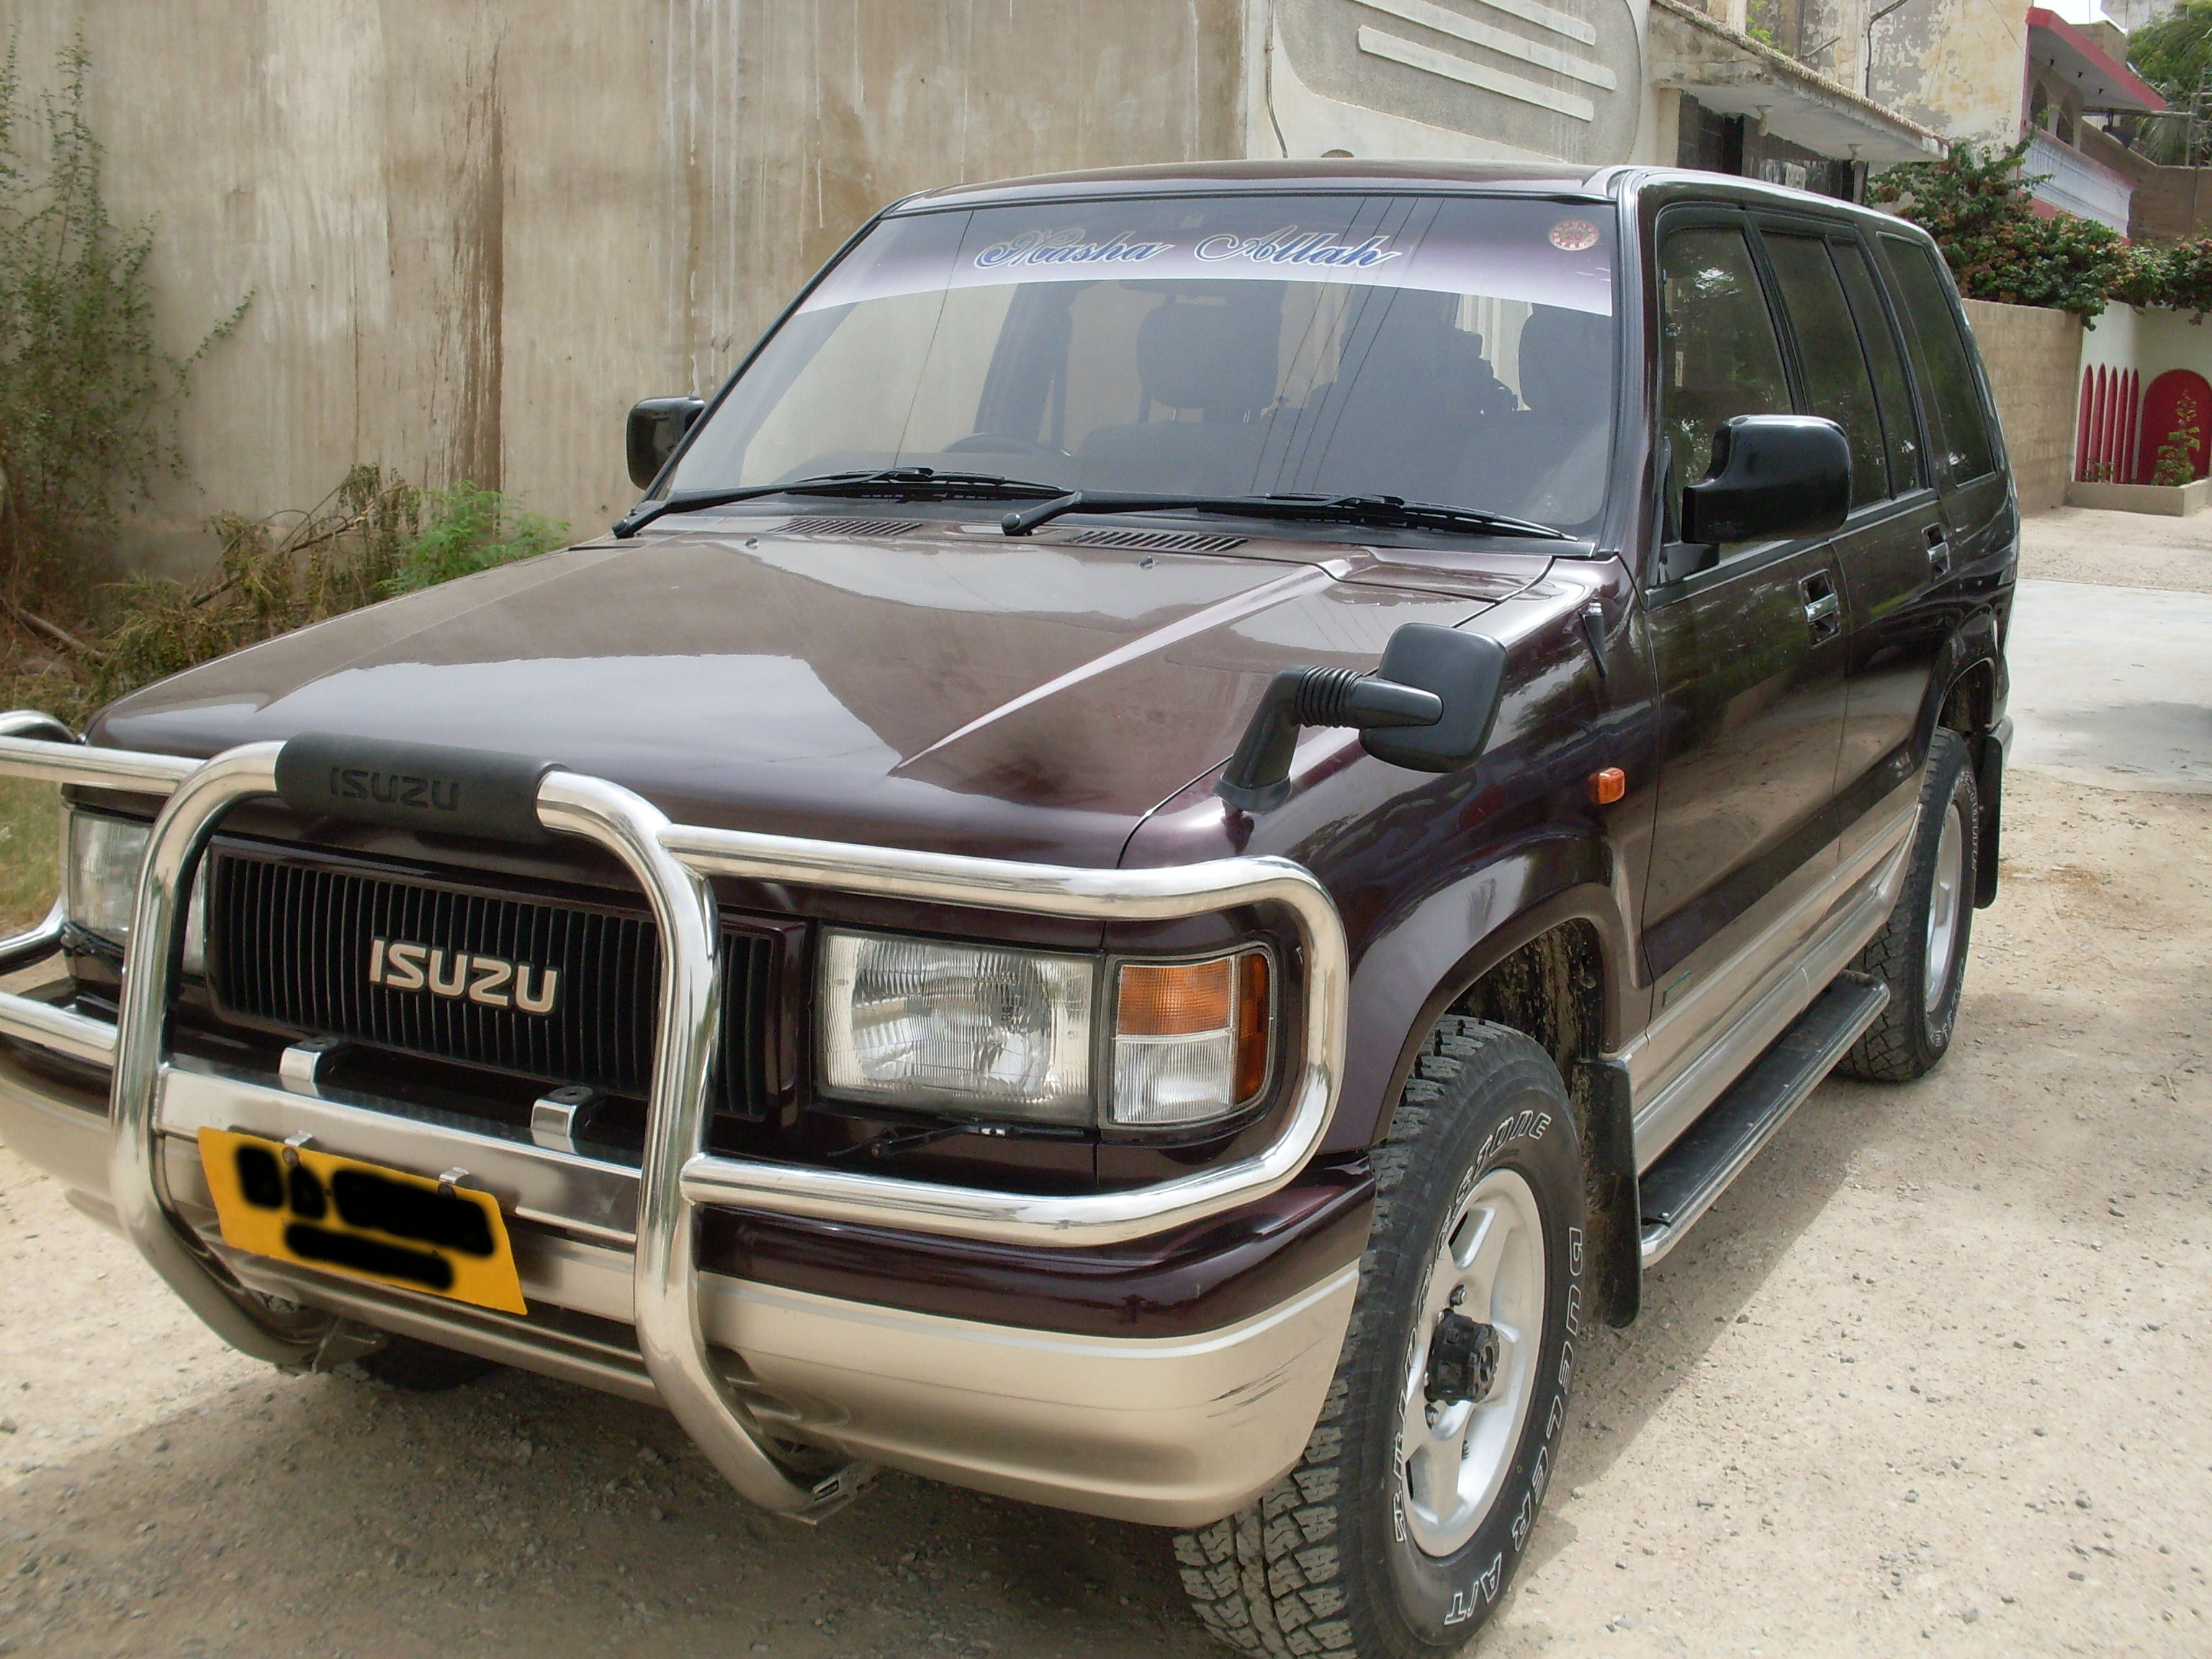 Isuzu Trooper #1